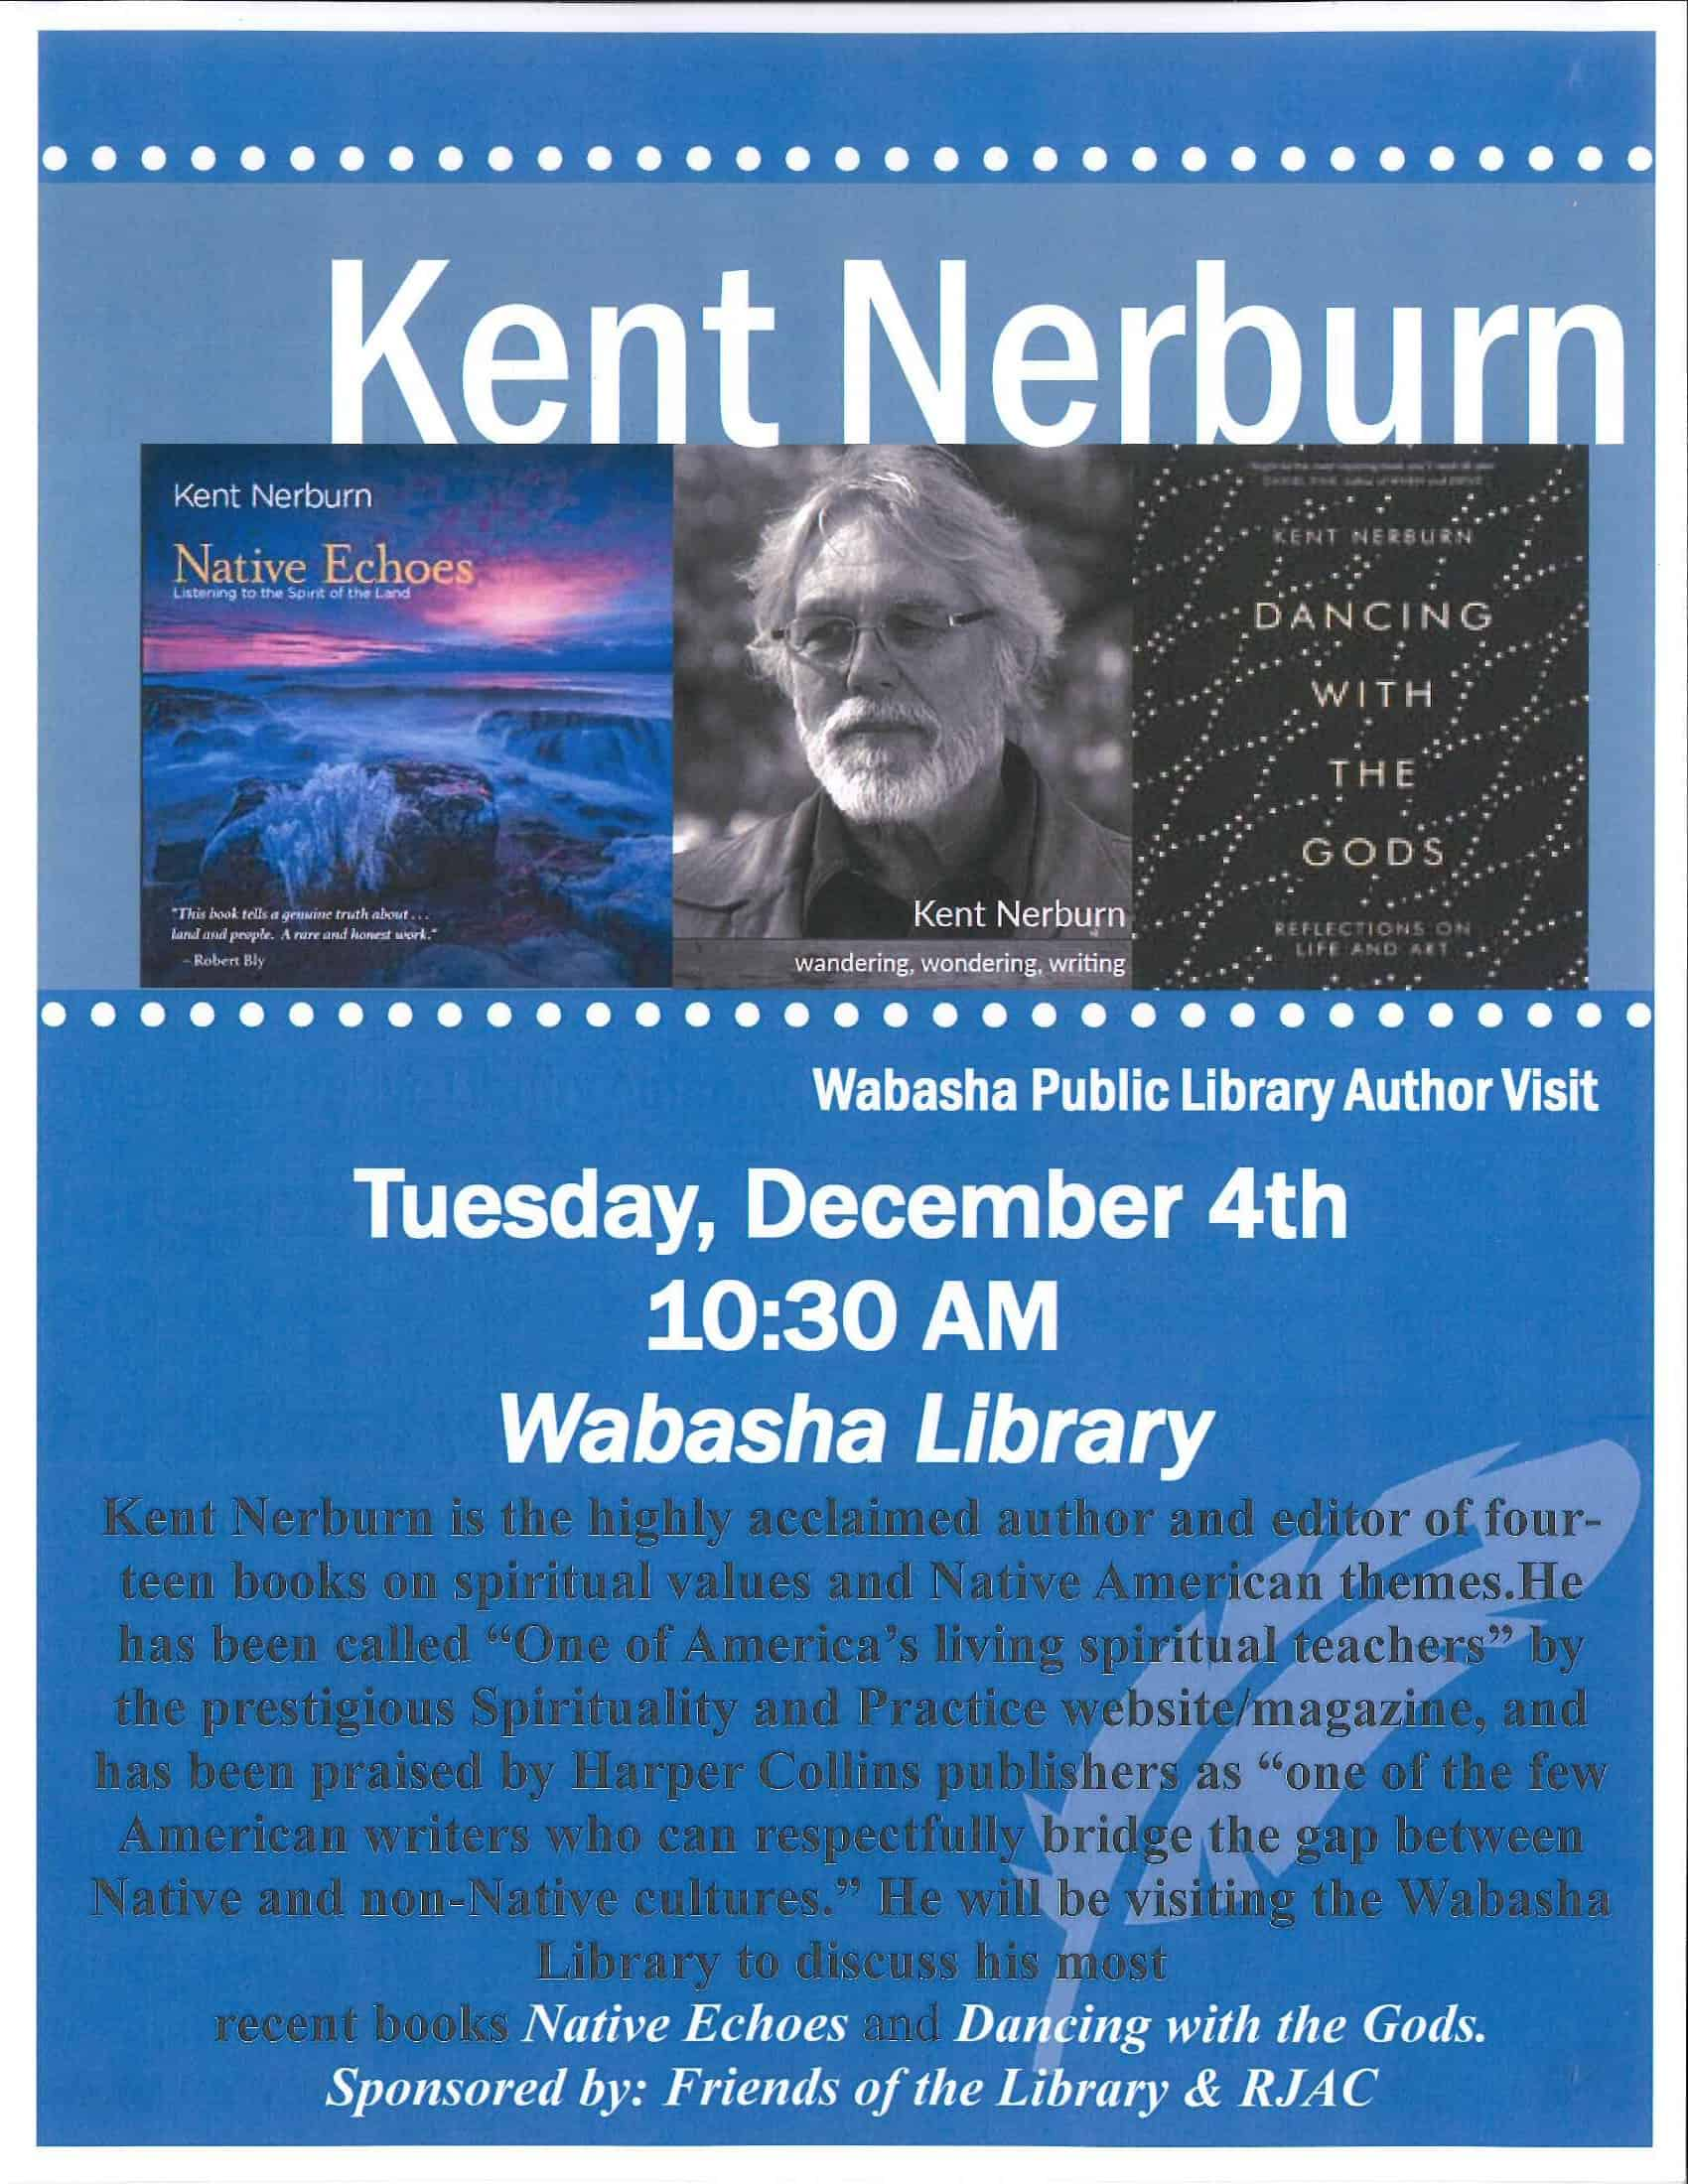 Kent Nerburn Author Visit - Native Echoes, Dancing With The Gods